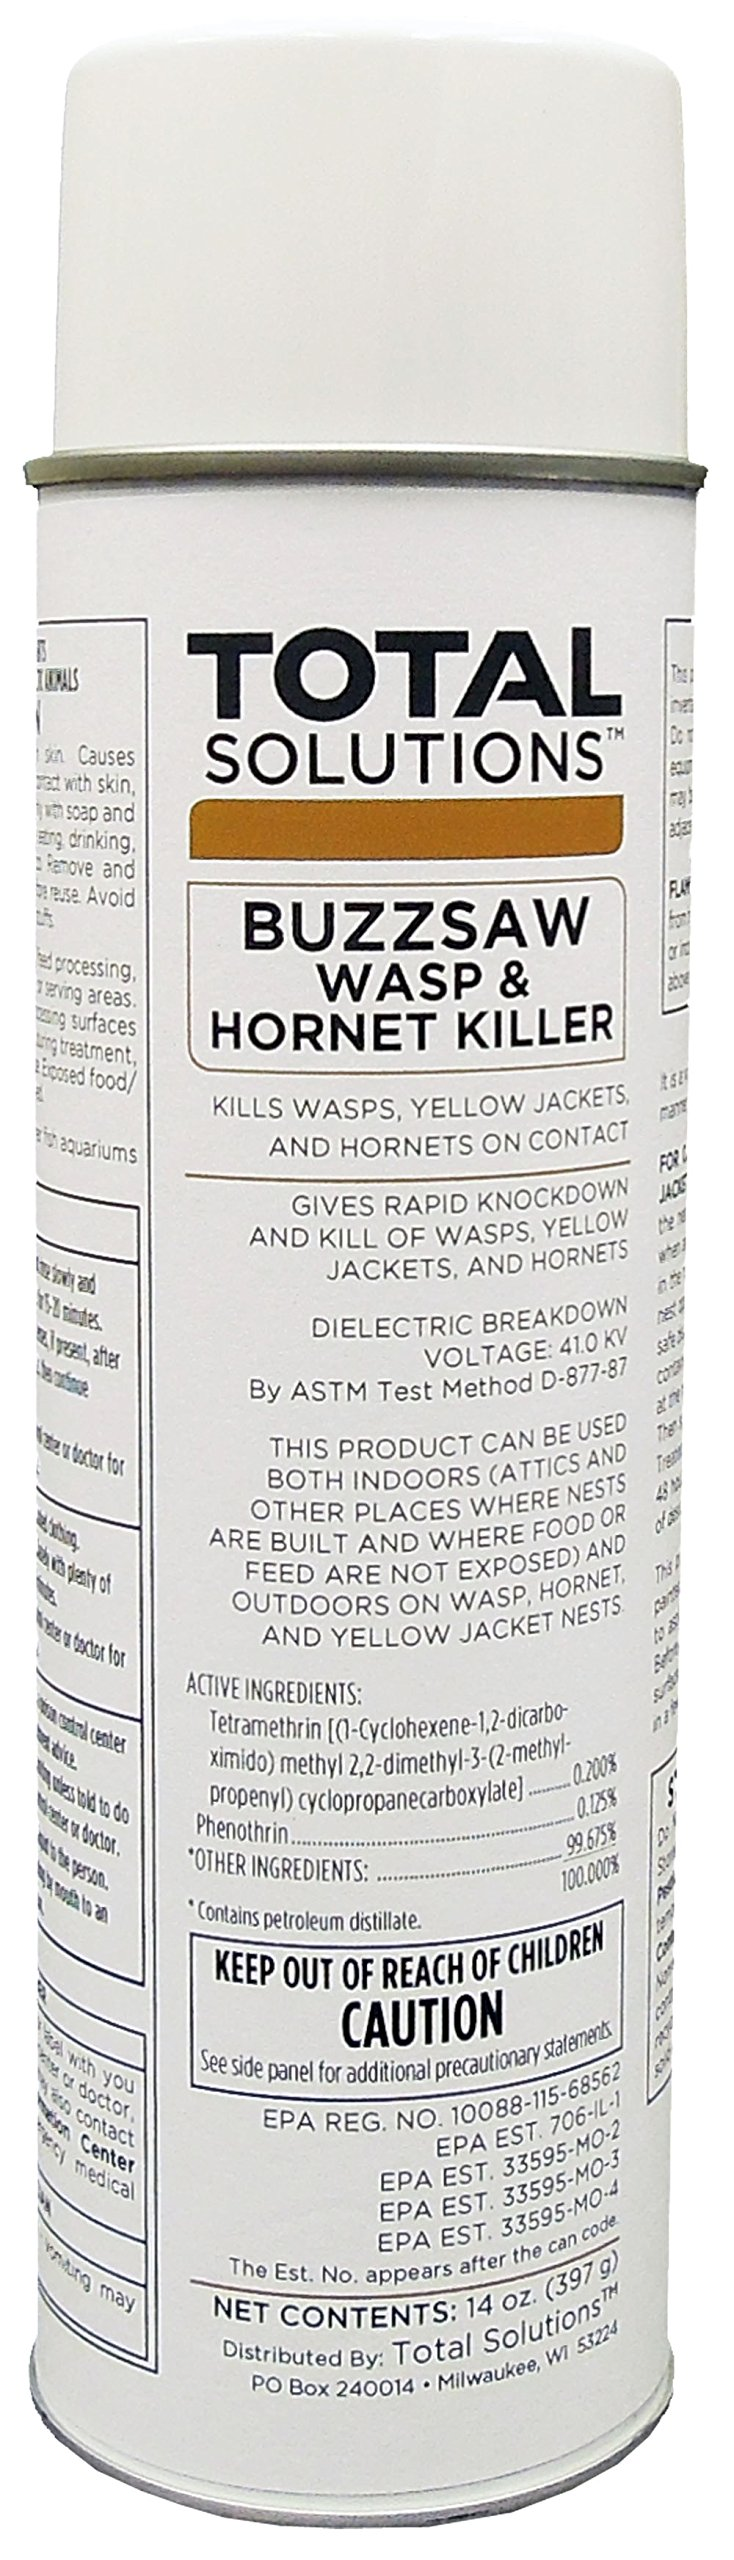 Buzzsaw Wasp & Hornet Killer - Kills stinging insects, 12 Can Case